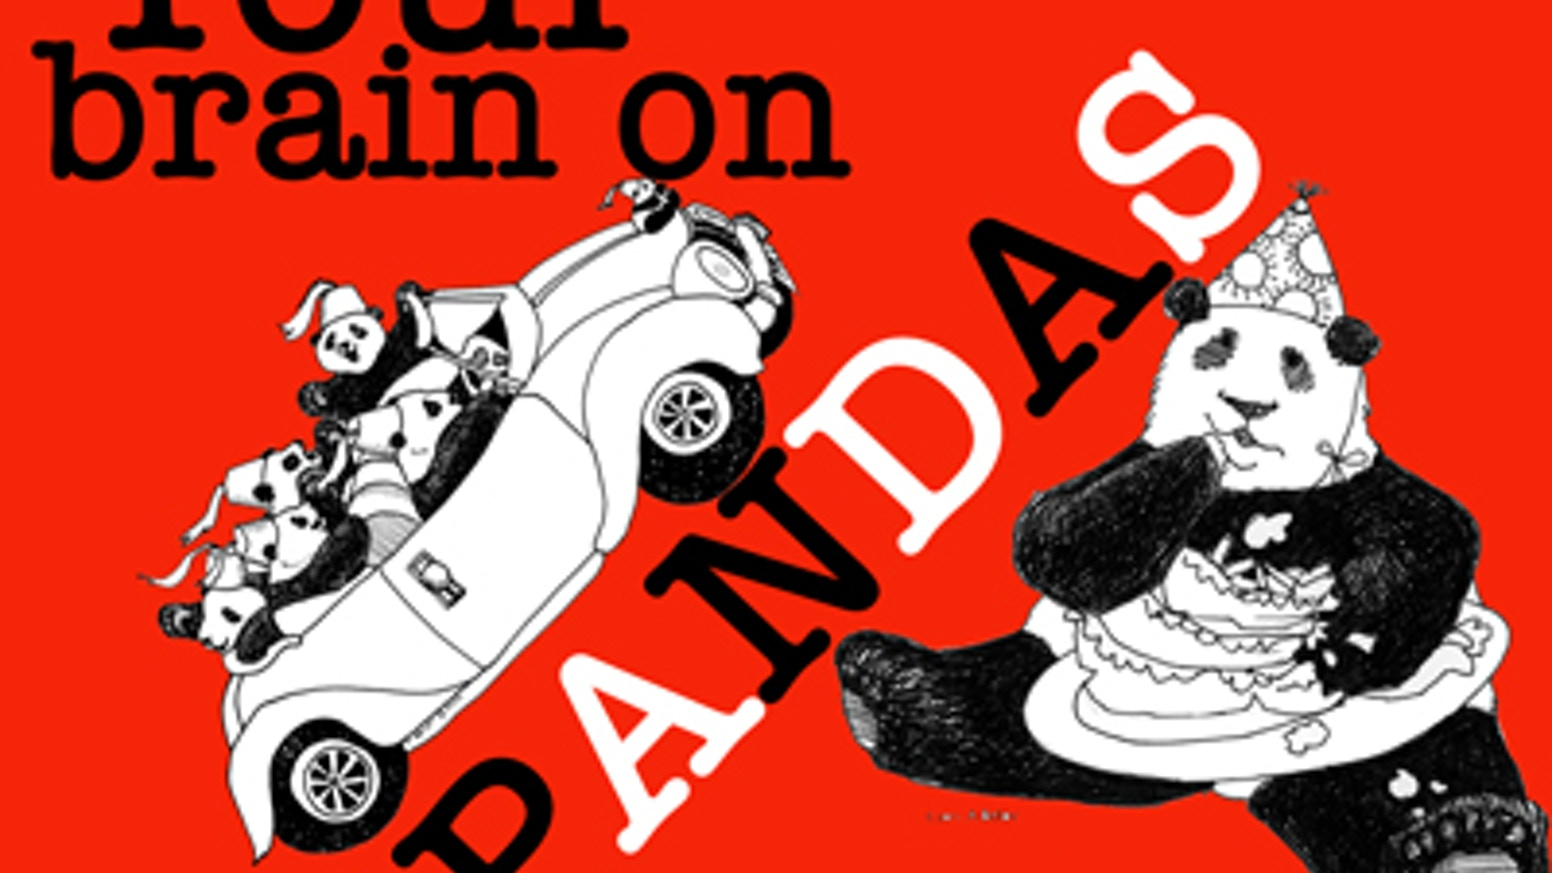 Panda satire is alive and well! Bring Bob T. Panda to the printed page in the first book of a cartoon collection about um...pandas.